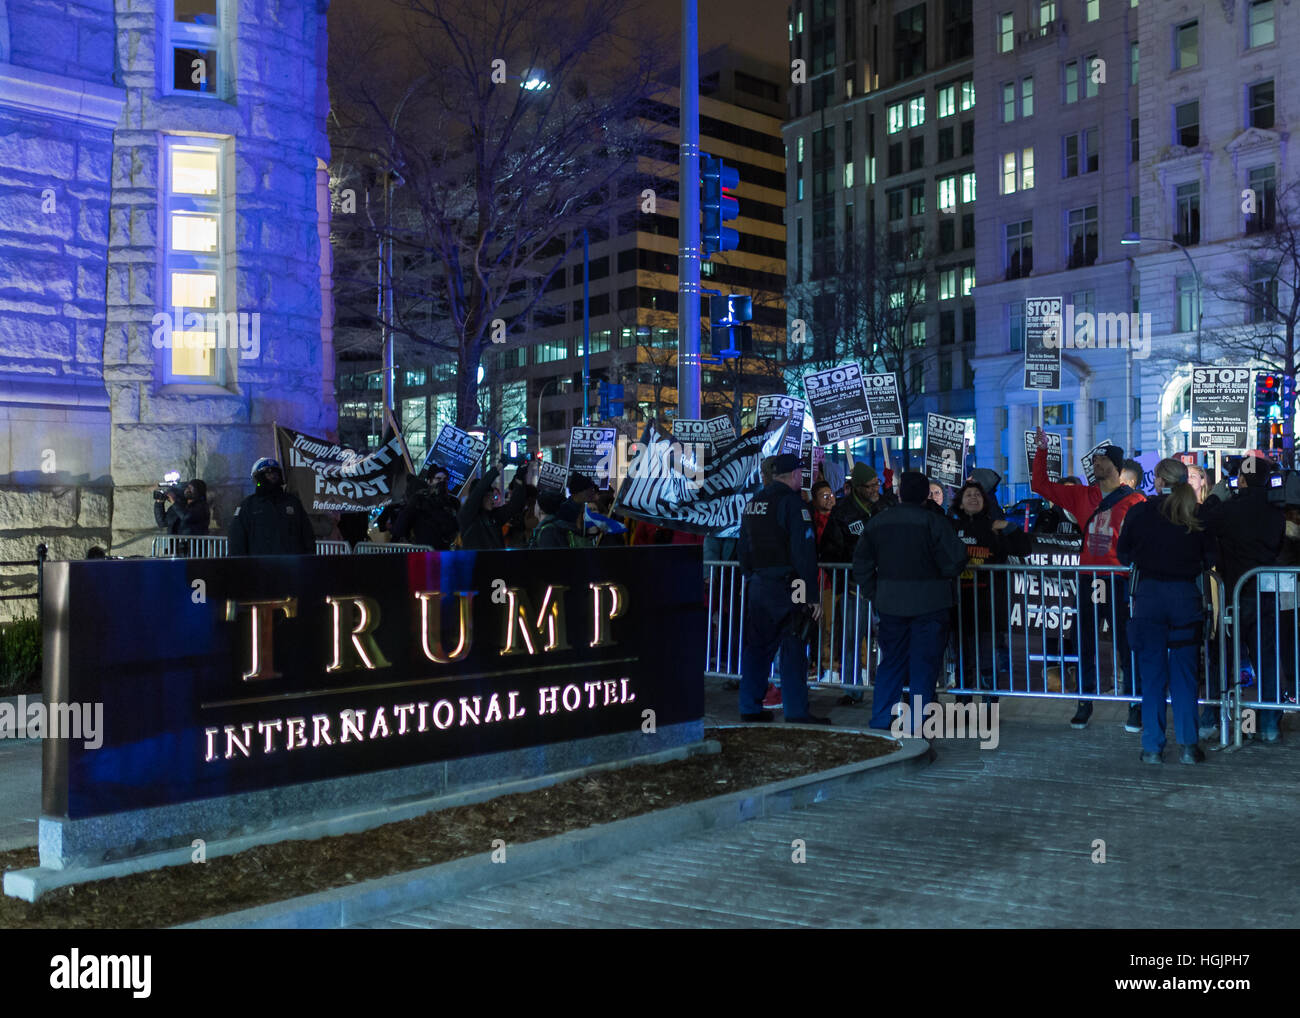 Washington, USA. 16 Jan, 2017. Protesters with 'Refuse Fascism' confront DC police and security in front of the Stock Photo